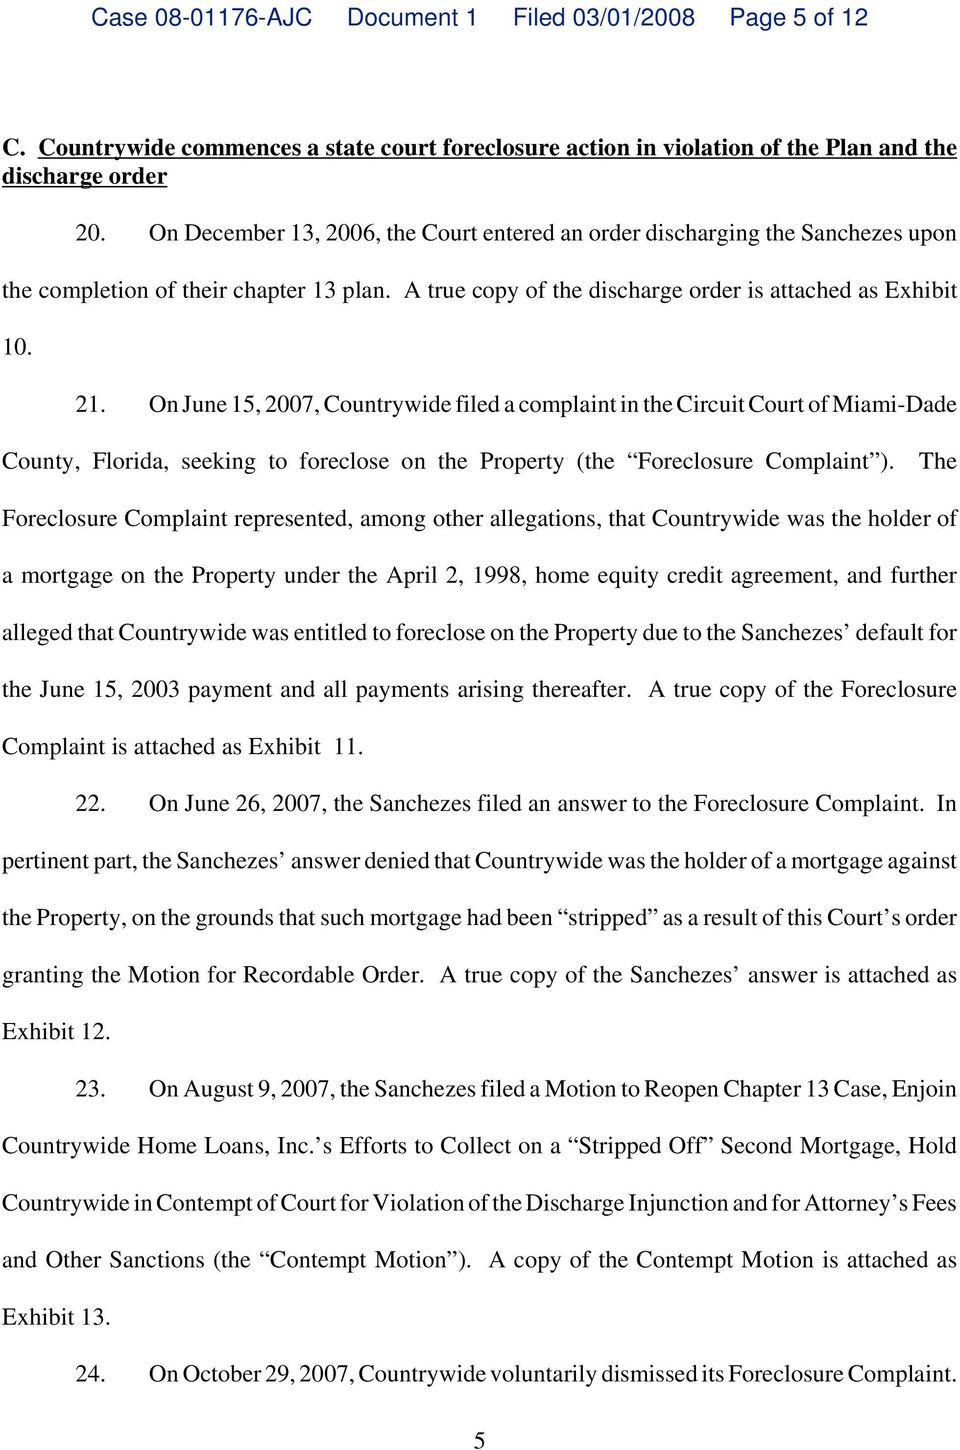 On June 15, 2007, Countrywide filed a complaint in the Circuit Court of Miami-Dade County, Florida, seeking to foreclose on the Property (the Foreclosure Complaint ).